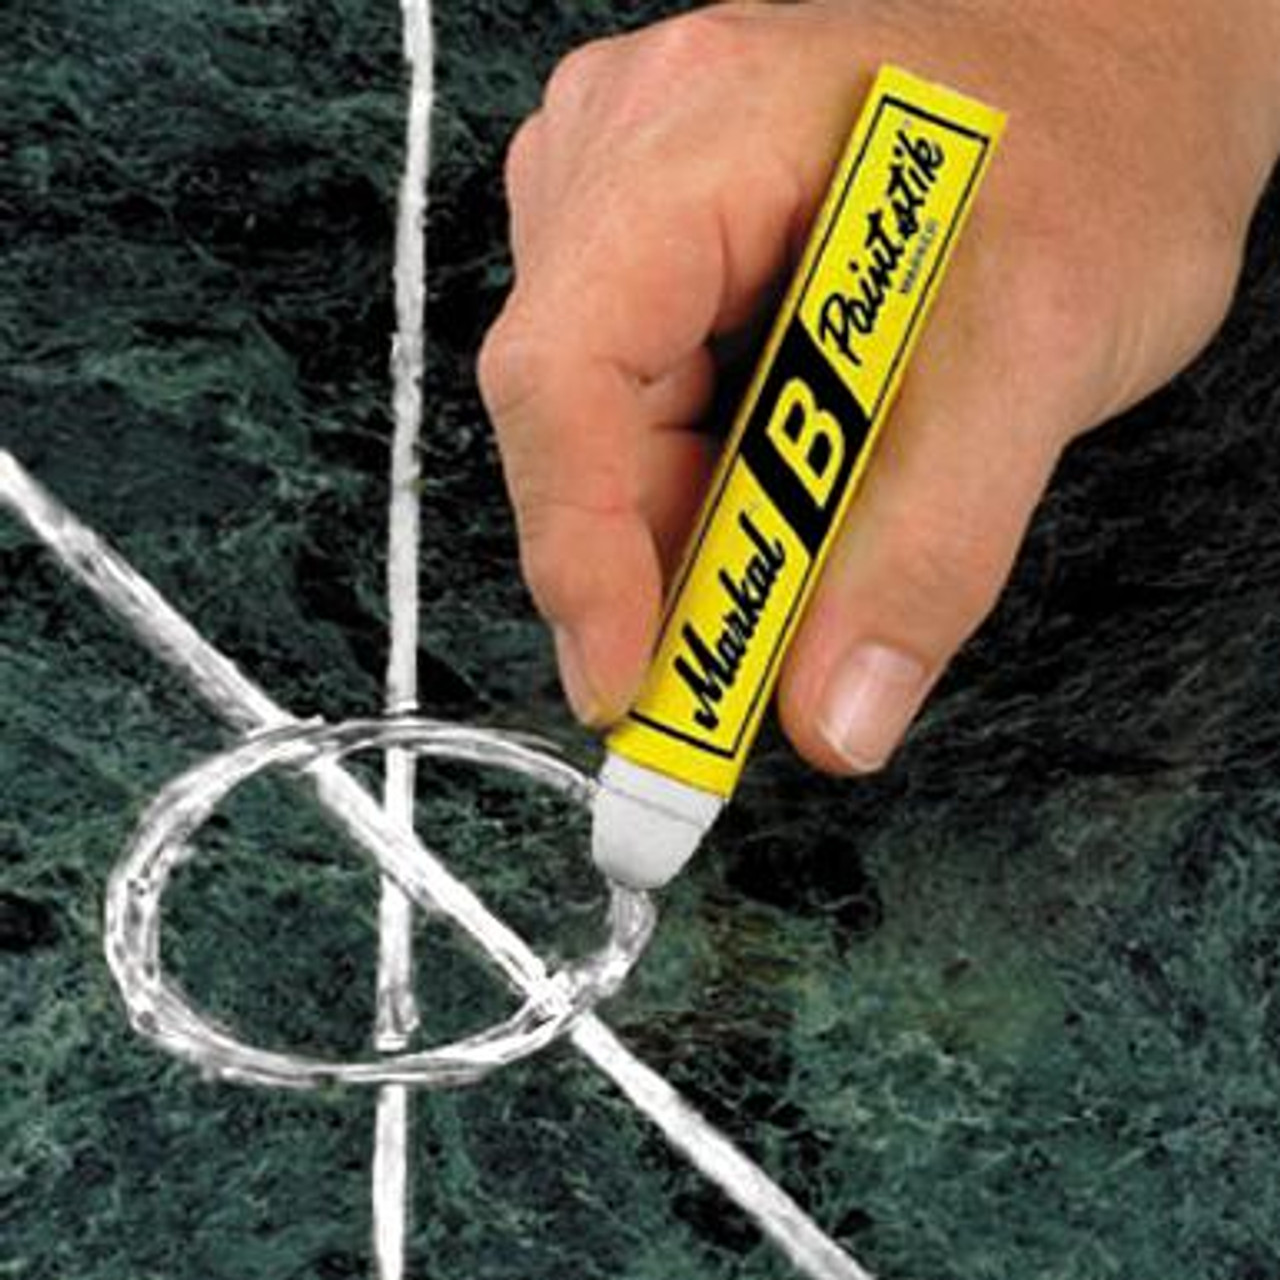 Markal Solid Paint Markers For Metal, Wood, Concrete